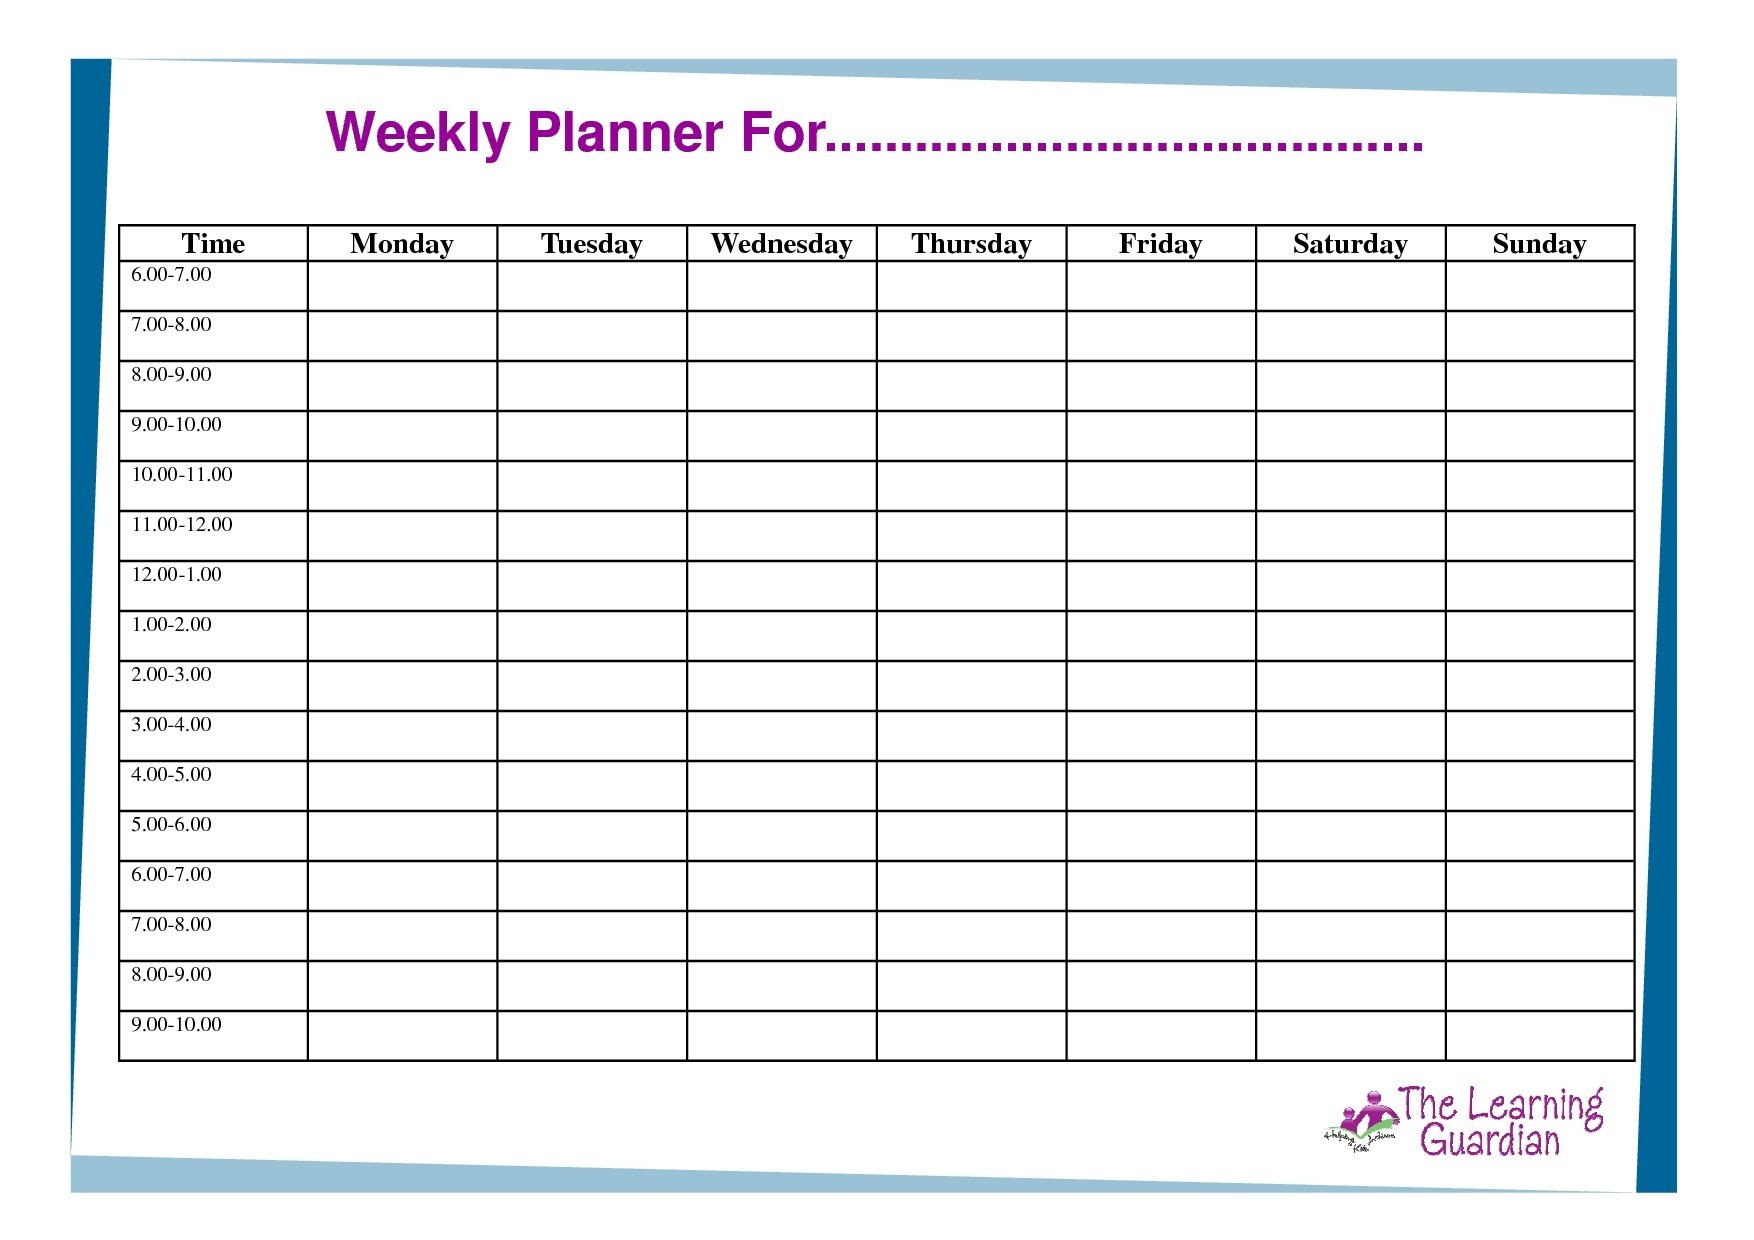 Free Printable Weekly Calendar Templates | Weekly Planner For Time within Free Printable Weekly Planner Calendars